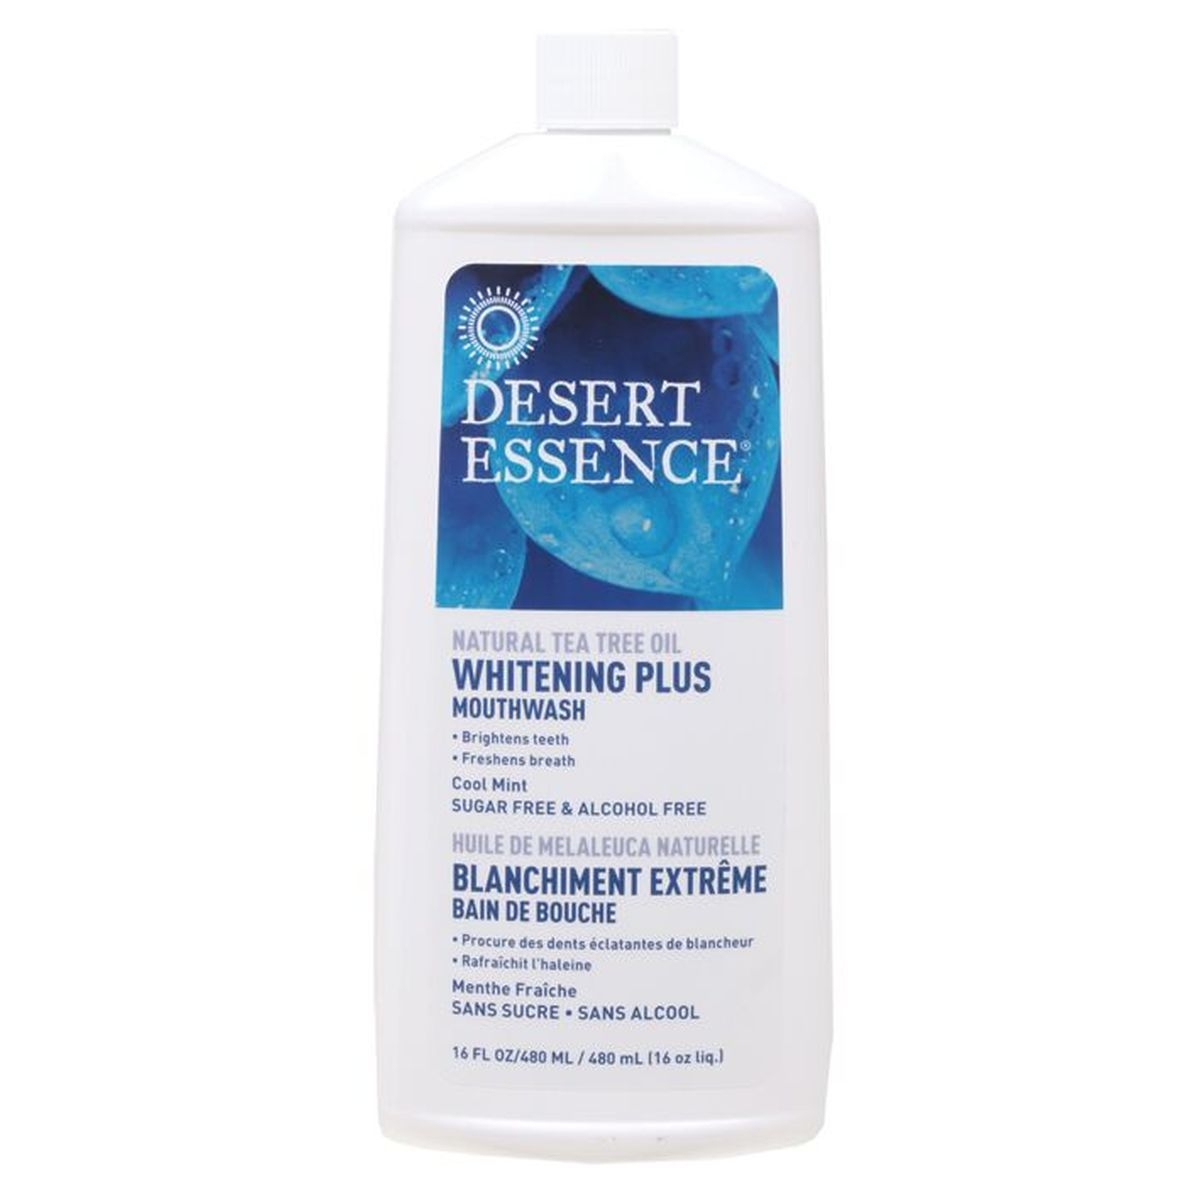 DESERT ESSENCE NATURAL WHITENING PLUS MOUTHWASH – COOL MINT